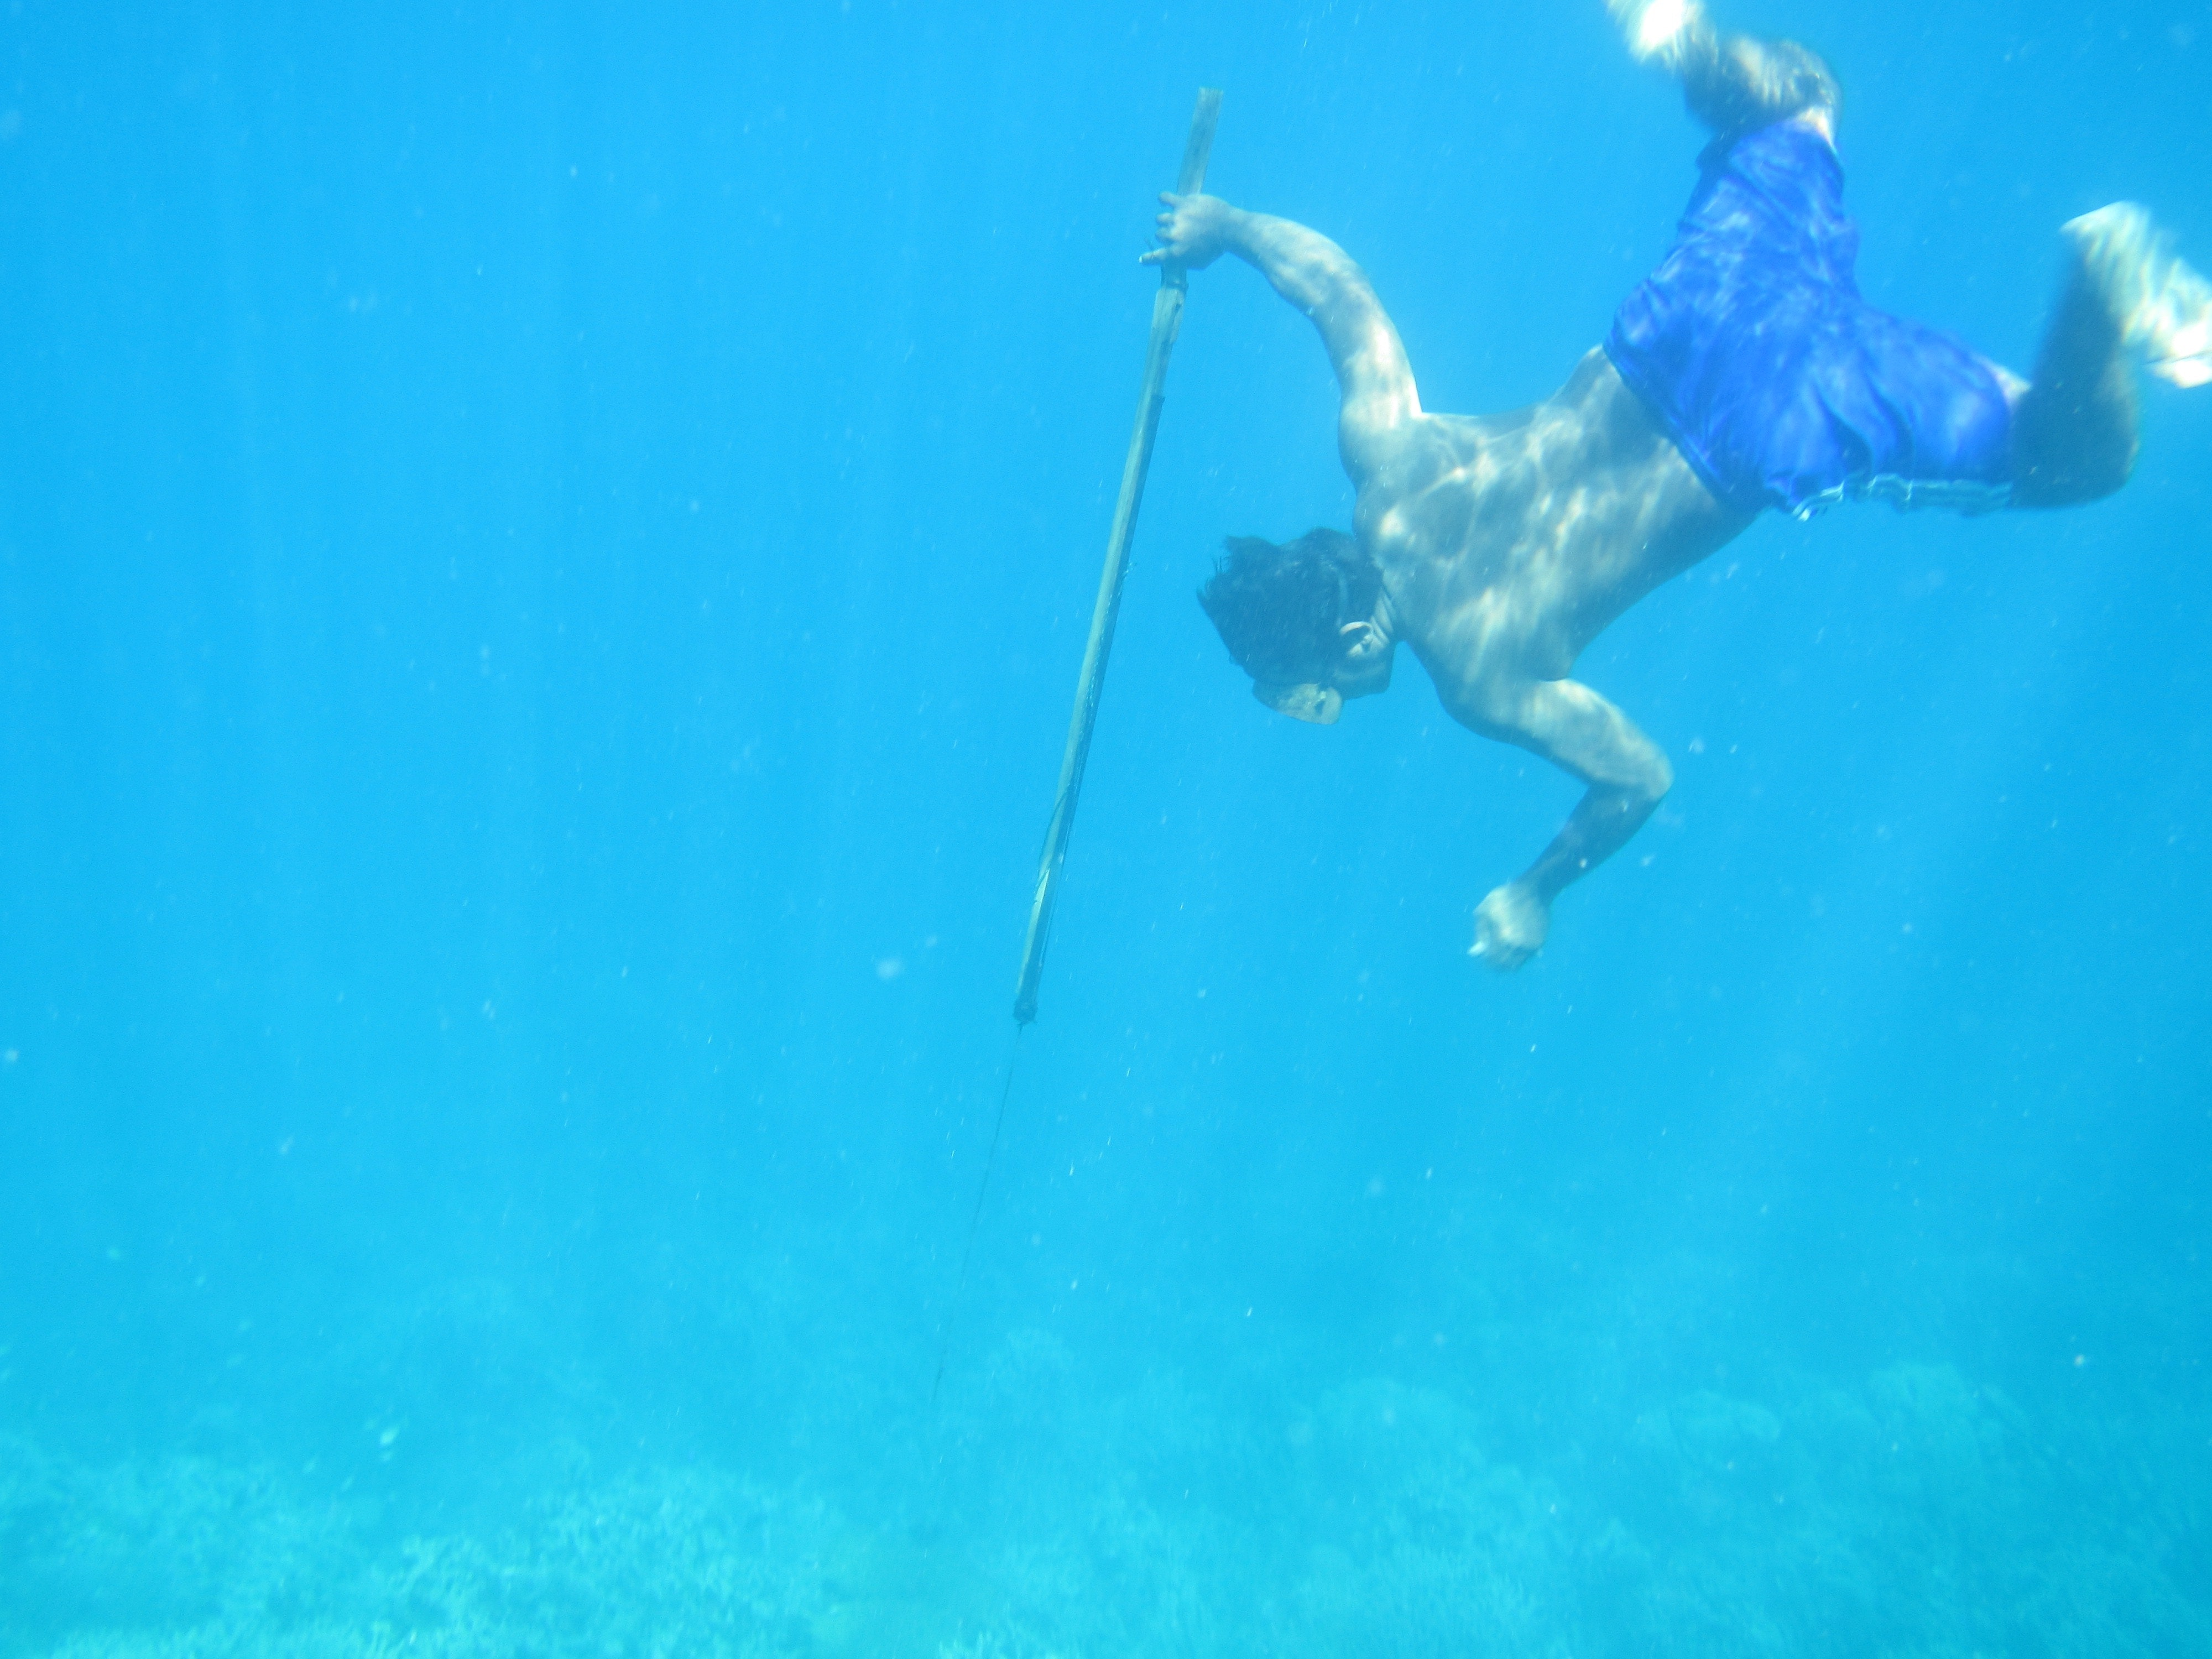 Are humans still evolving? Freediving people have evolved to stay underwater longer